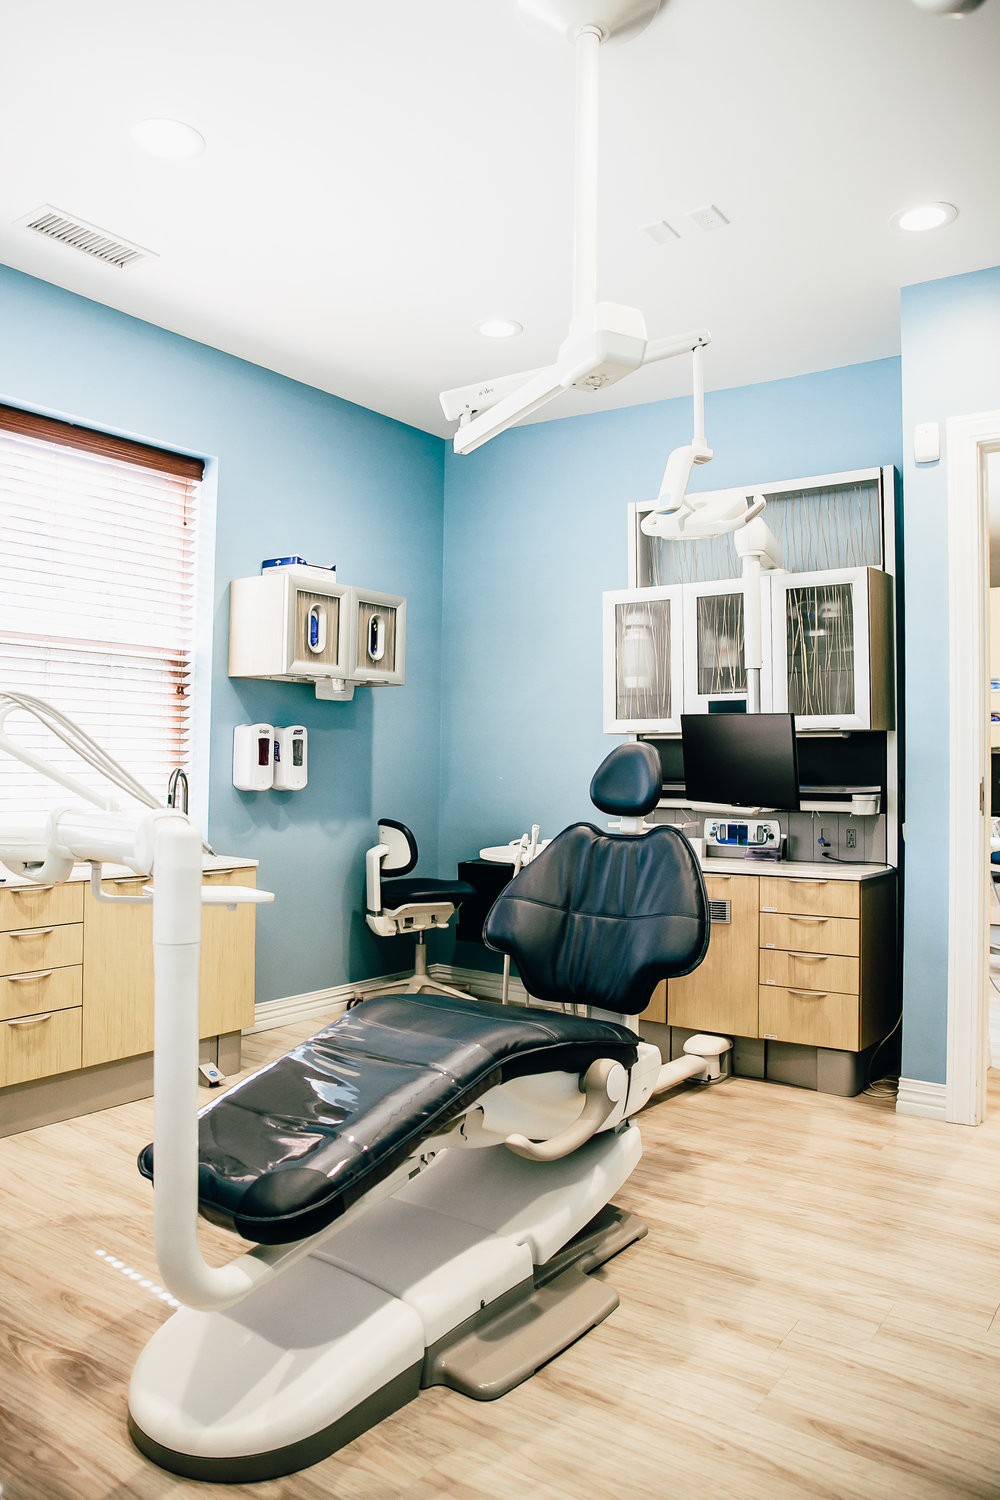 springsvillage_family_dentistry-15.jpg